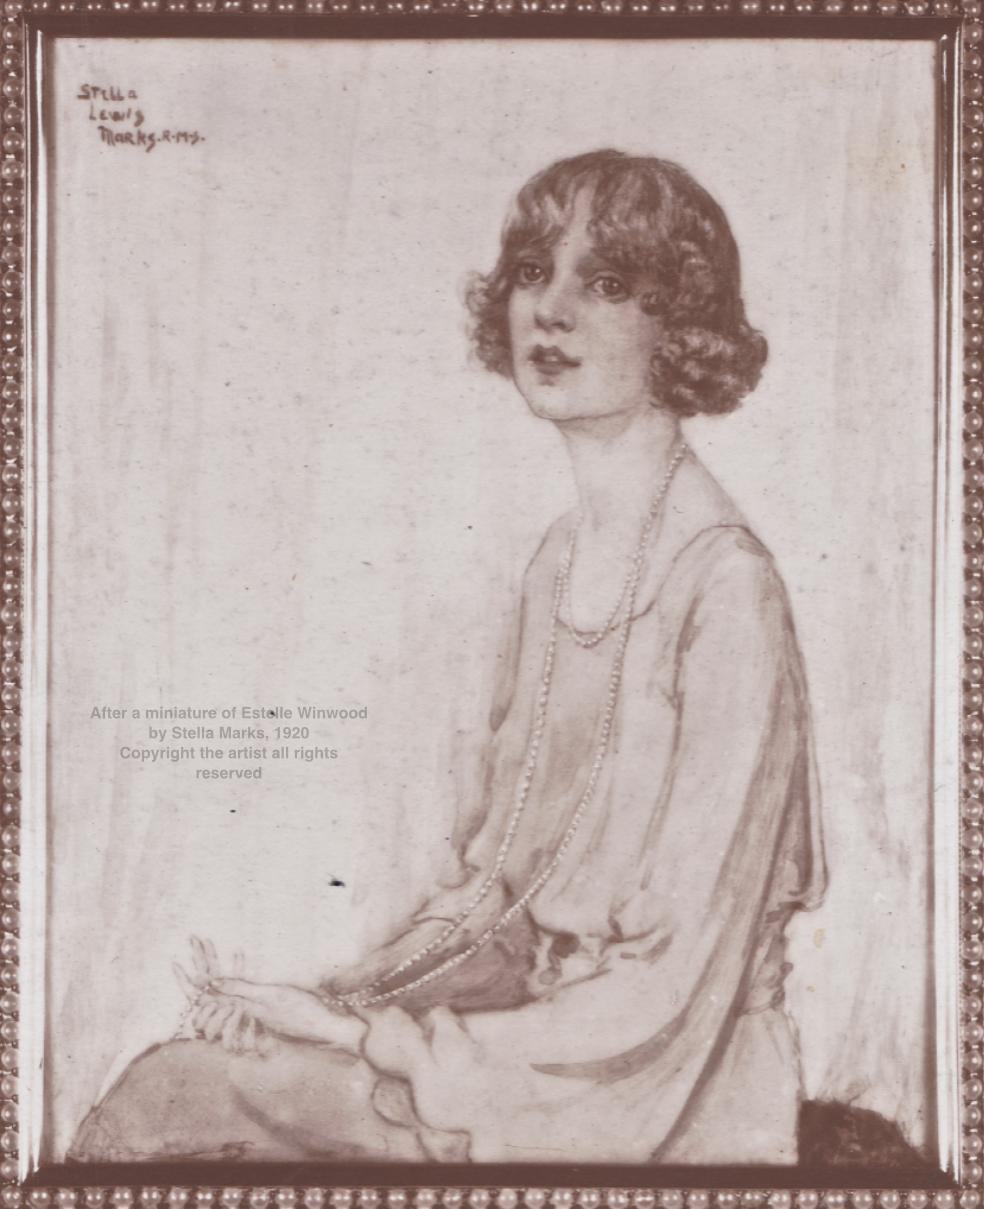 After a miniature of Estelle Winwood by Stella Marks, 1920. Copyright Stella Marks' Estate all rights reserved